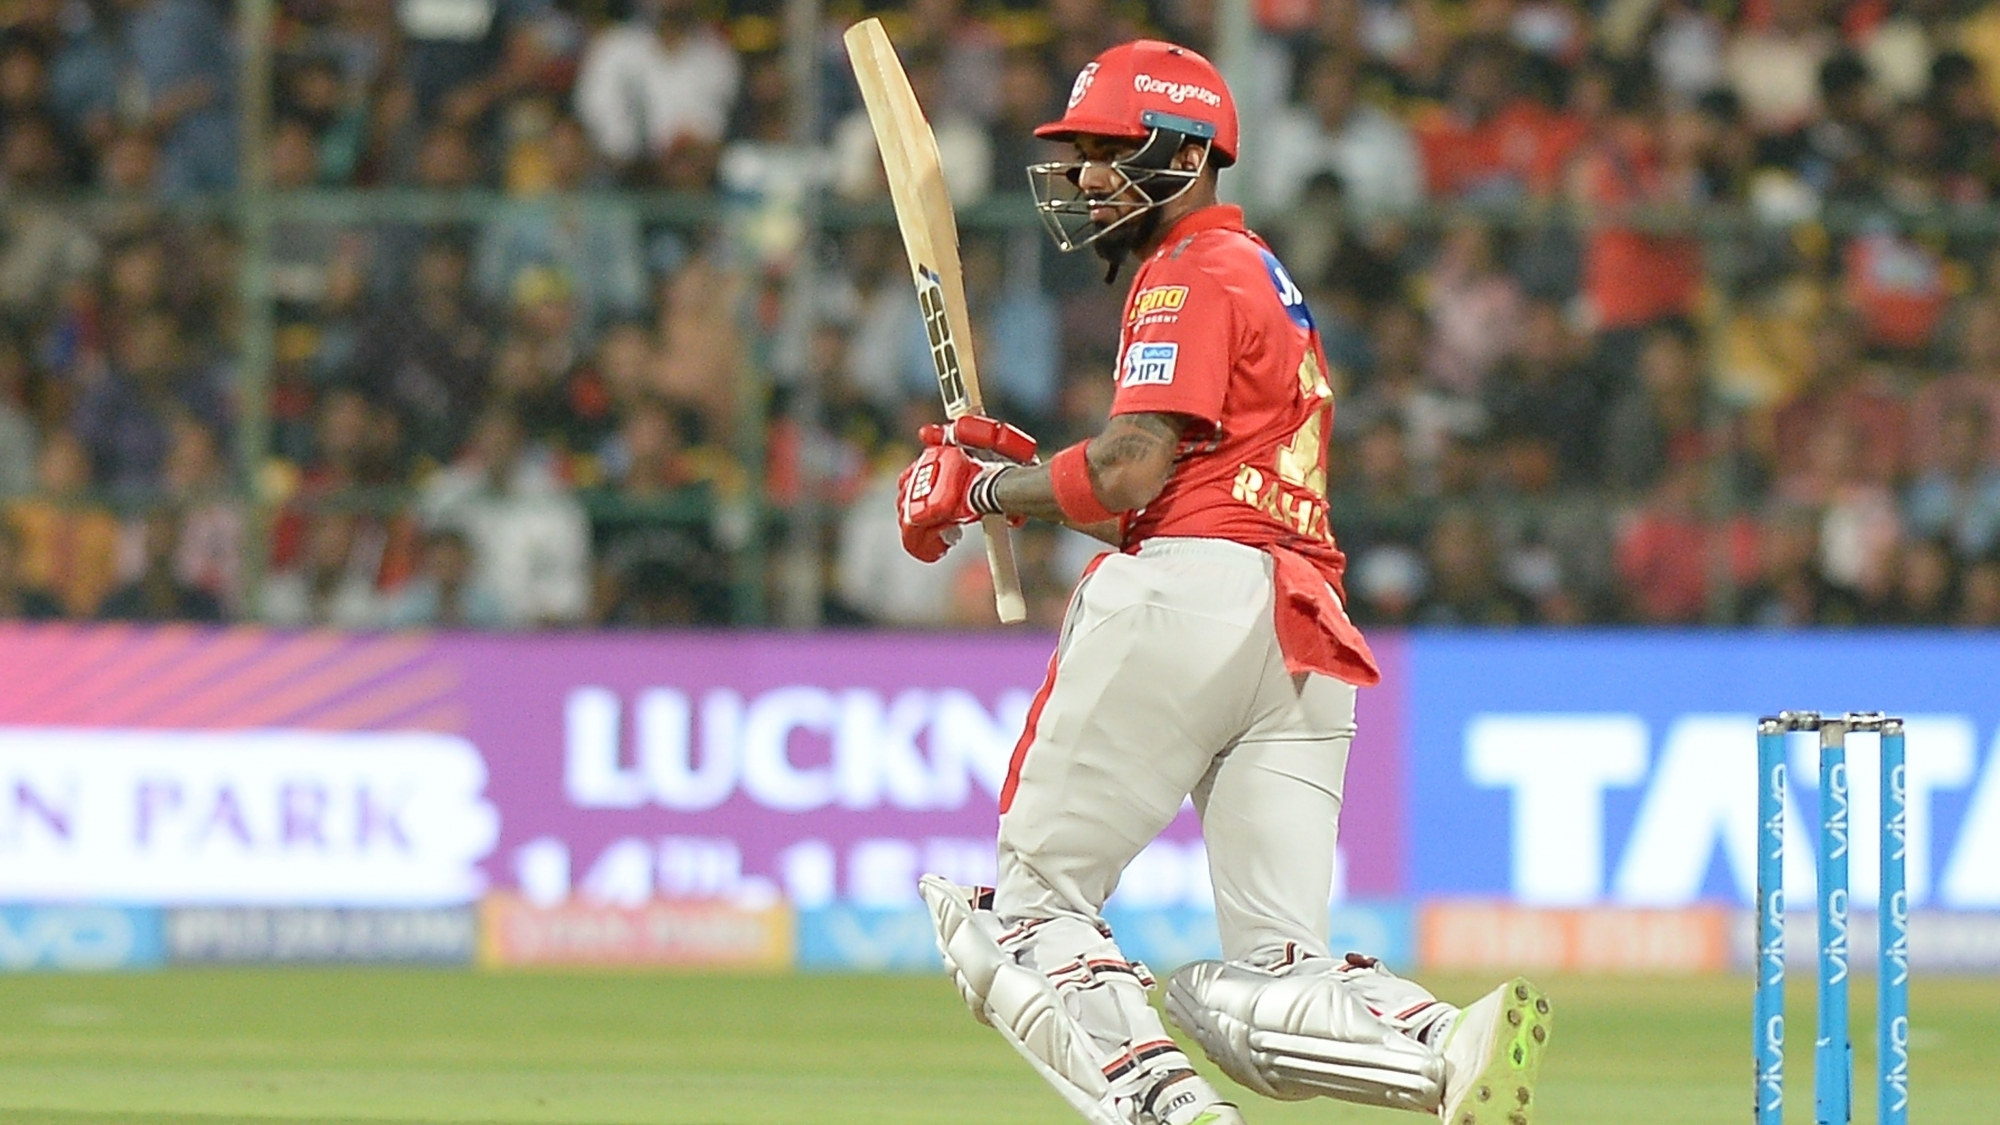 IPL 2018: KL Rahul rates his 84* against Rajasthan Royals as his most fulfilling knock